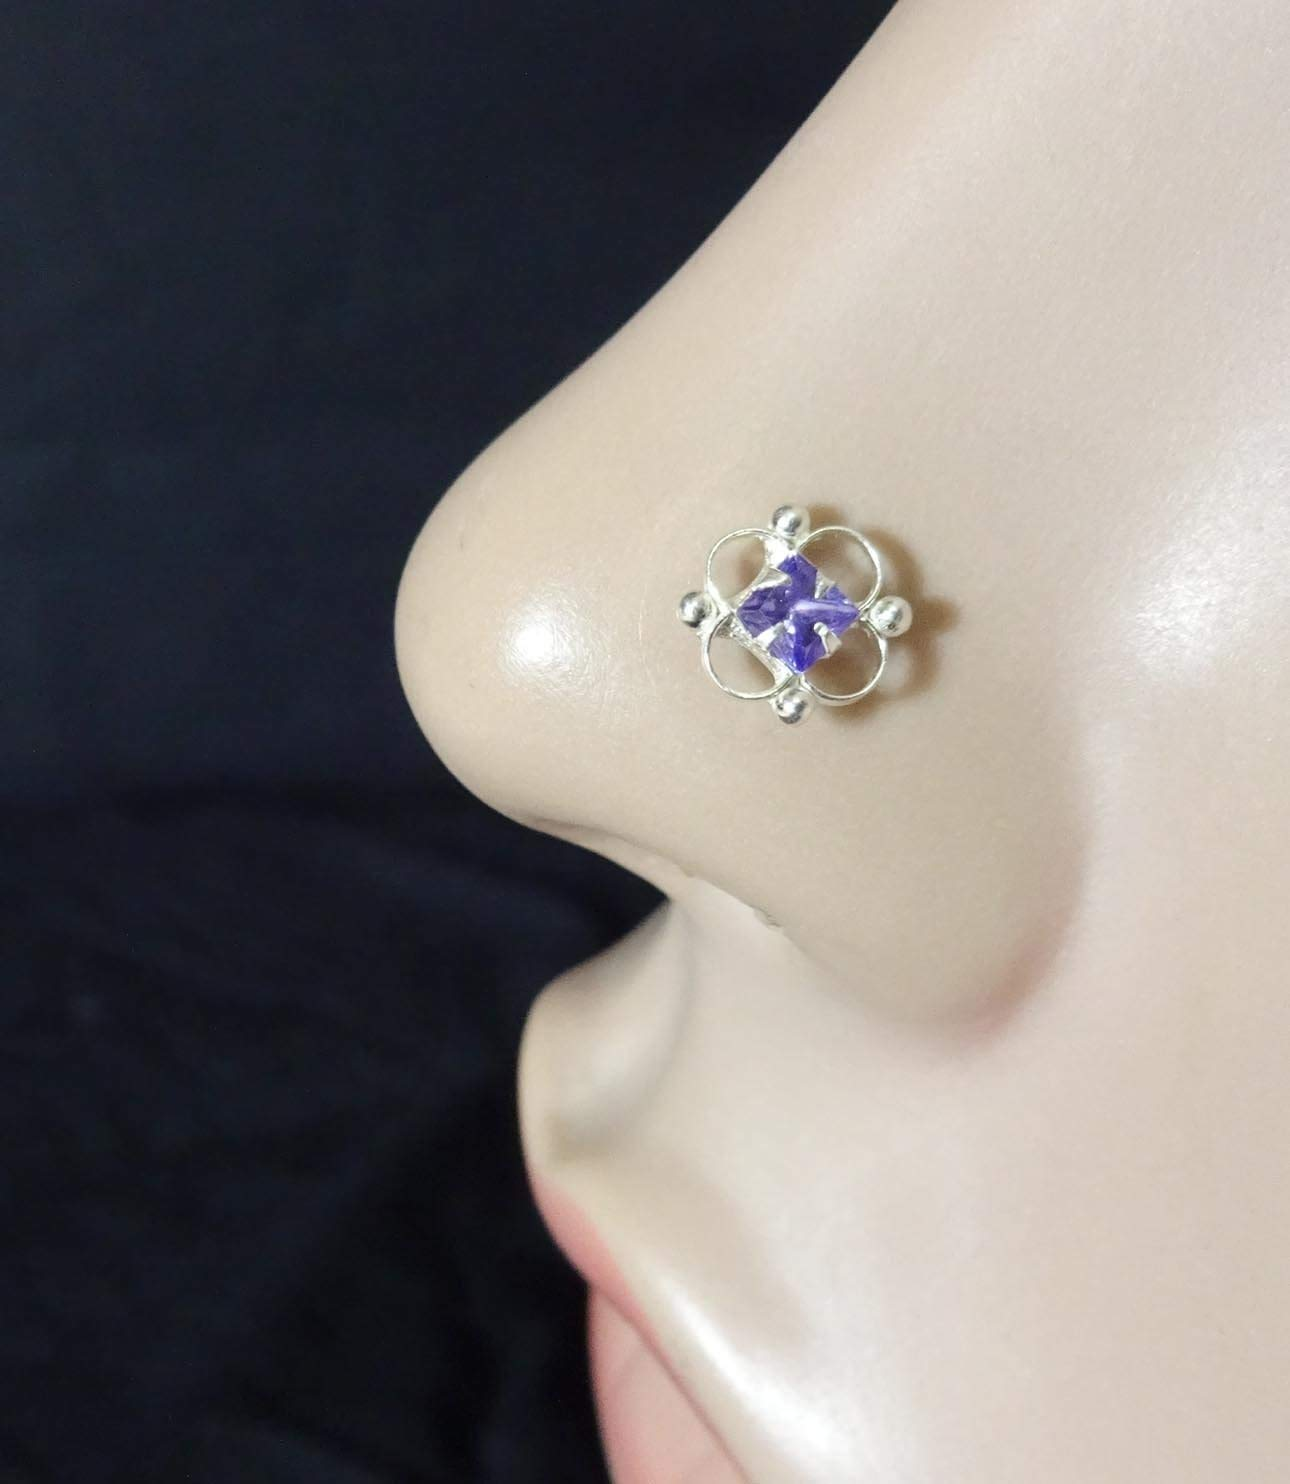 Sapphire Stone Nose Stud,Monroe Nose Ring,Tiny Gold Piercing,Wedding Nose Screw,CZ Clear Nose Stud,Crock Screw Nose Stud,Silver Diamond Piercing,Indian Nose Stud,Silver Nose Cuff(TEJ707)